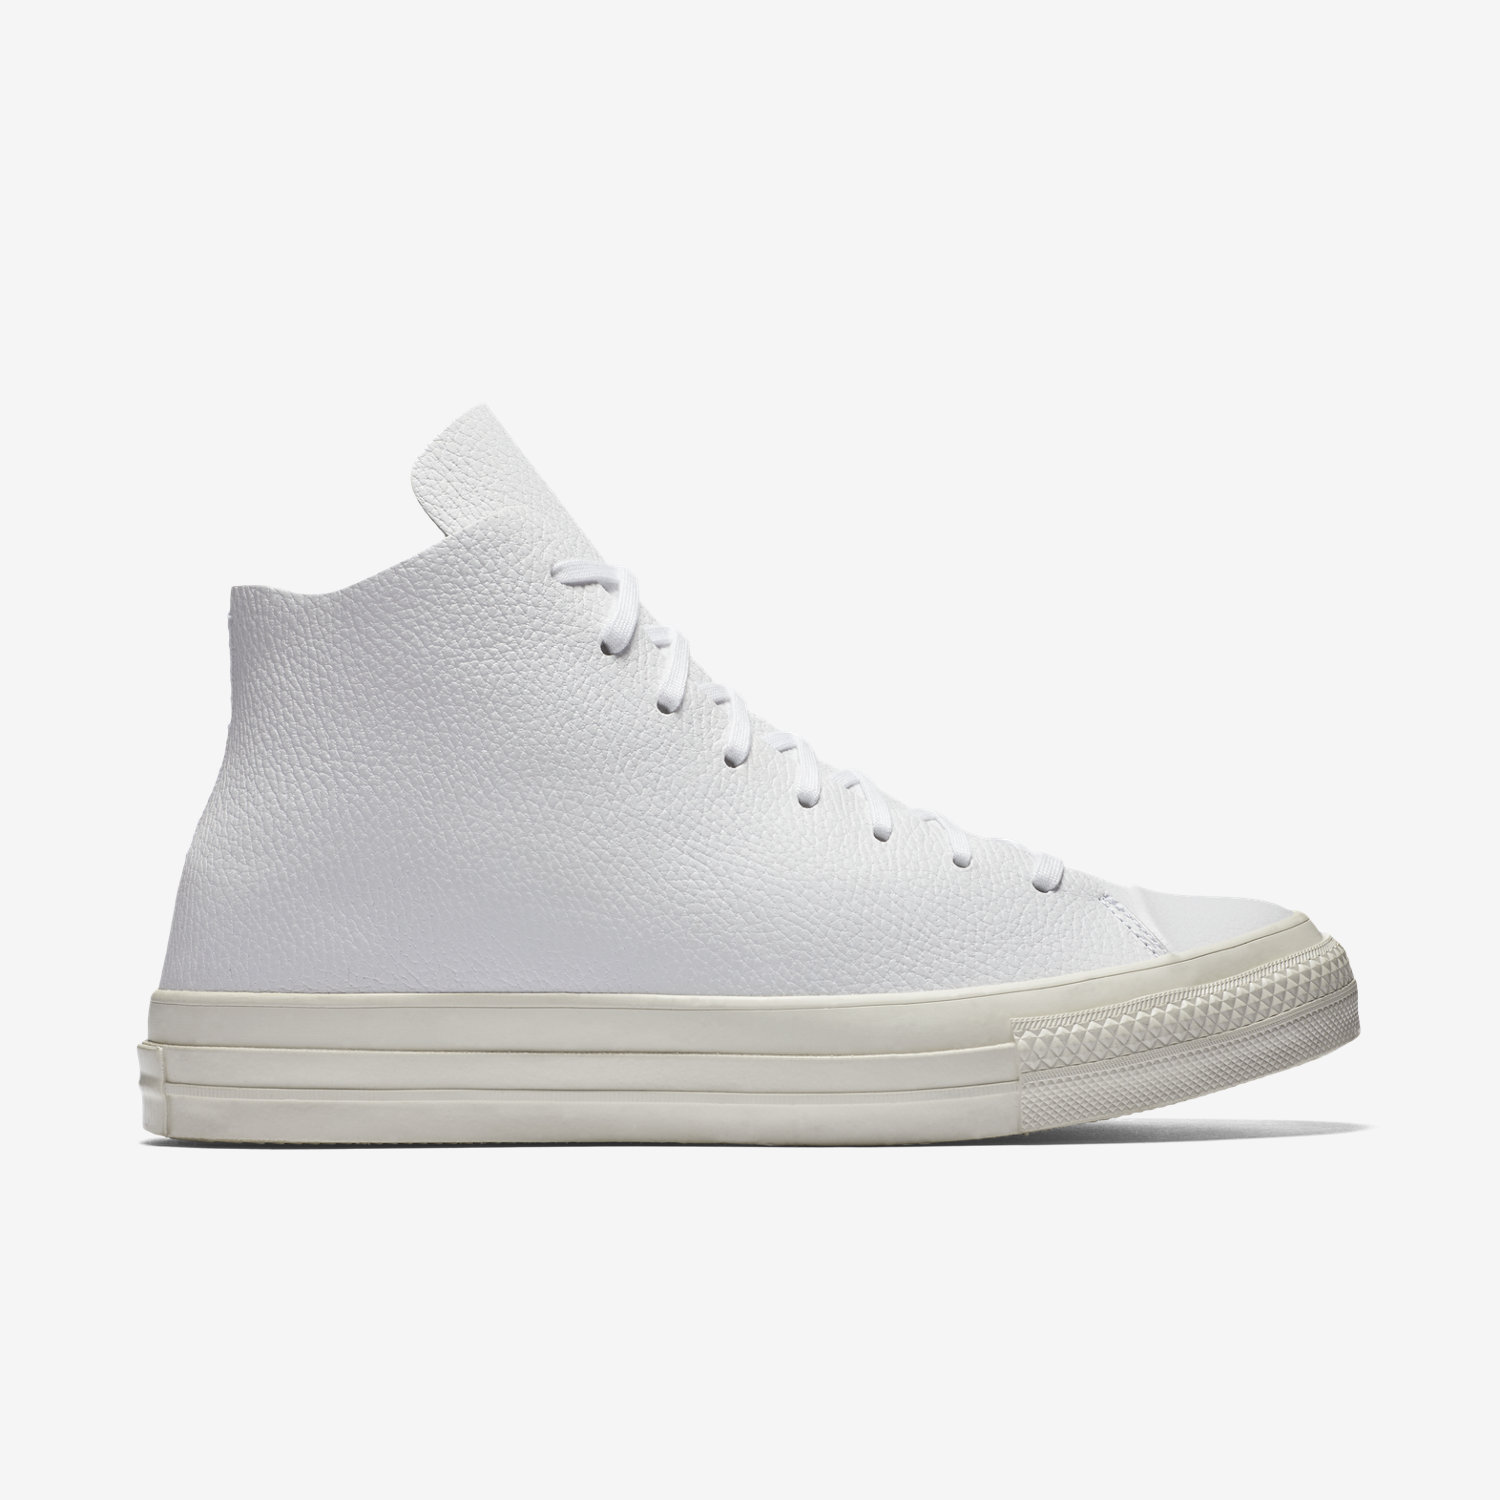 converse shoes high tops white. converse shoes high tops white